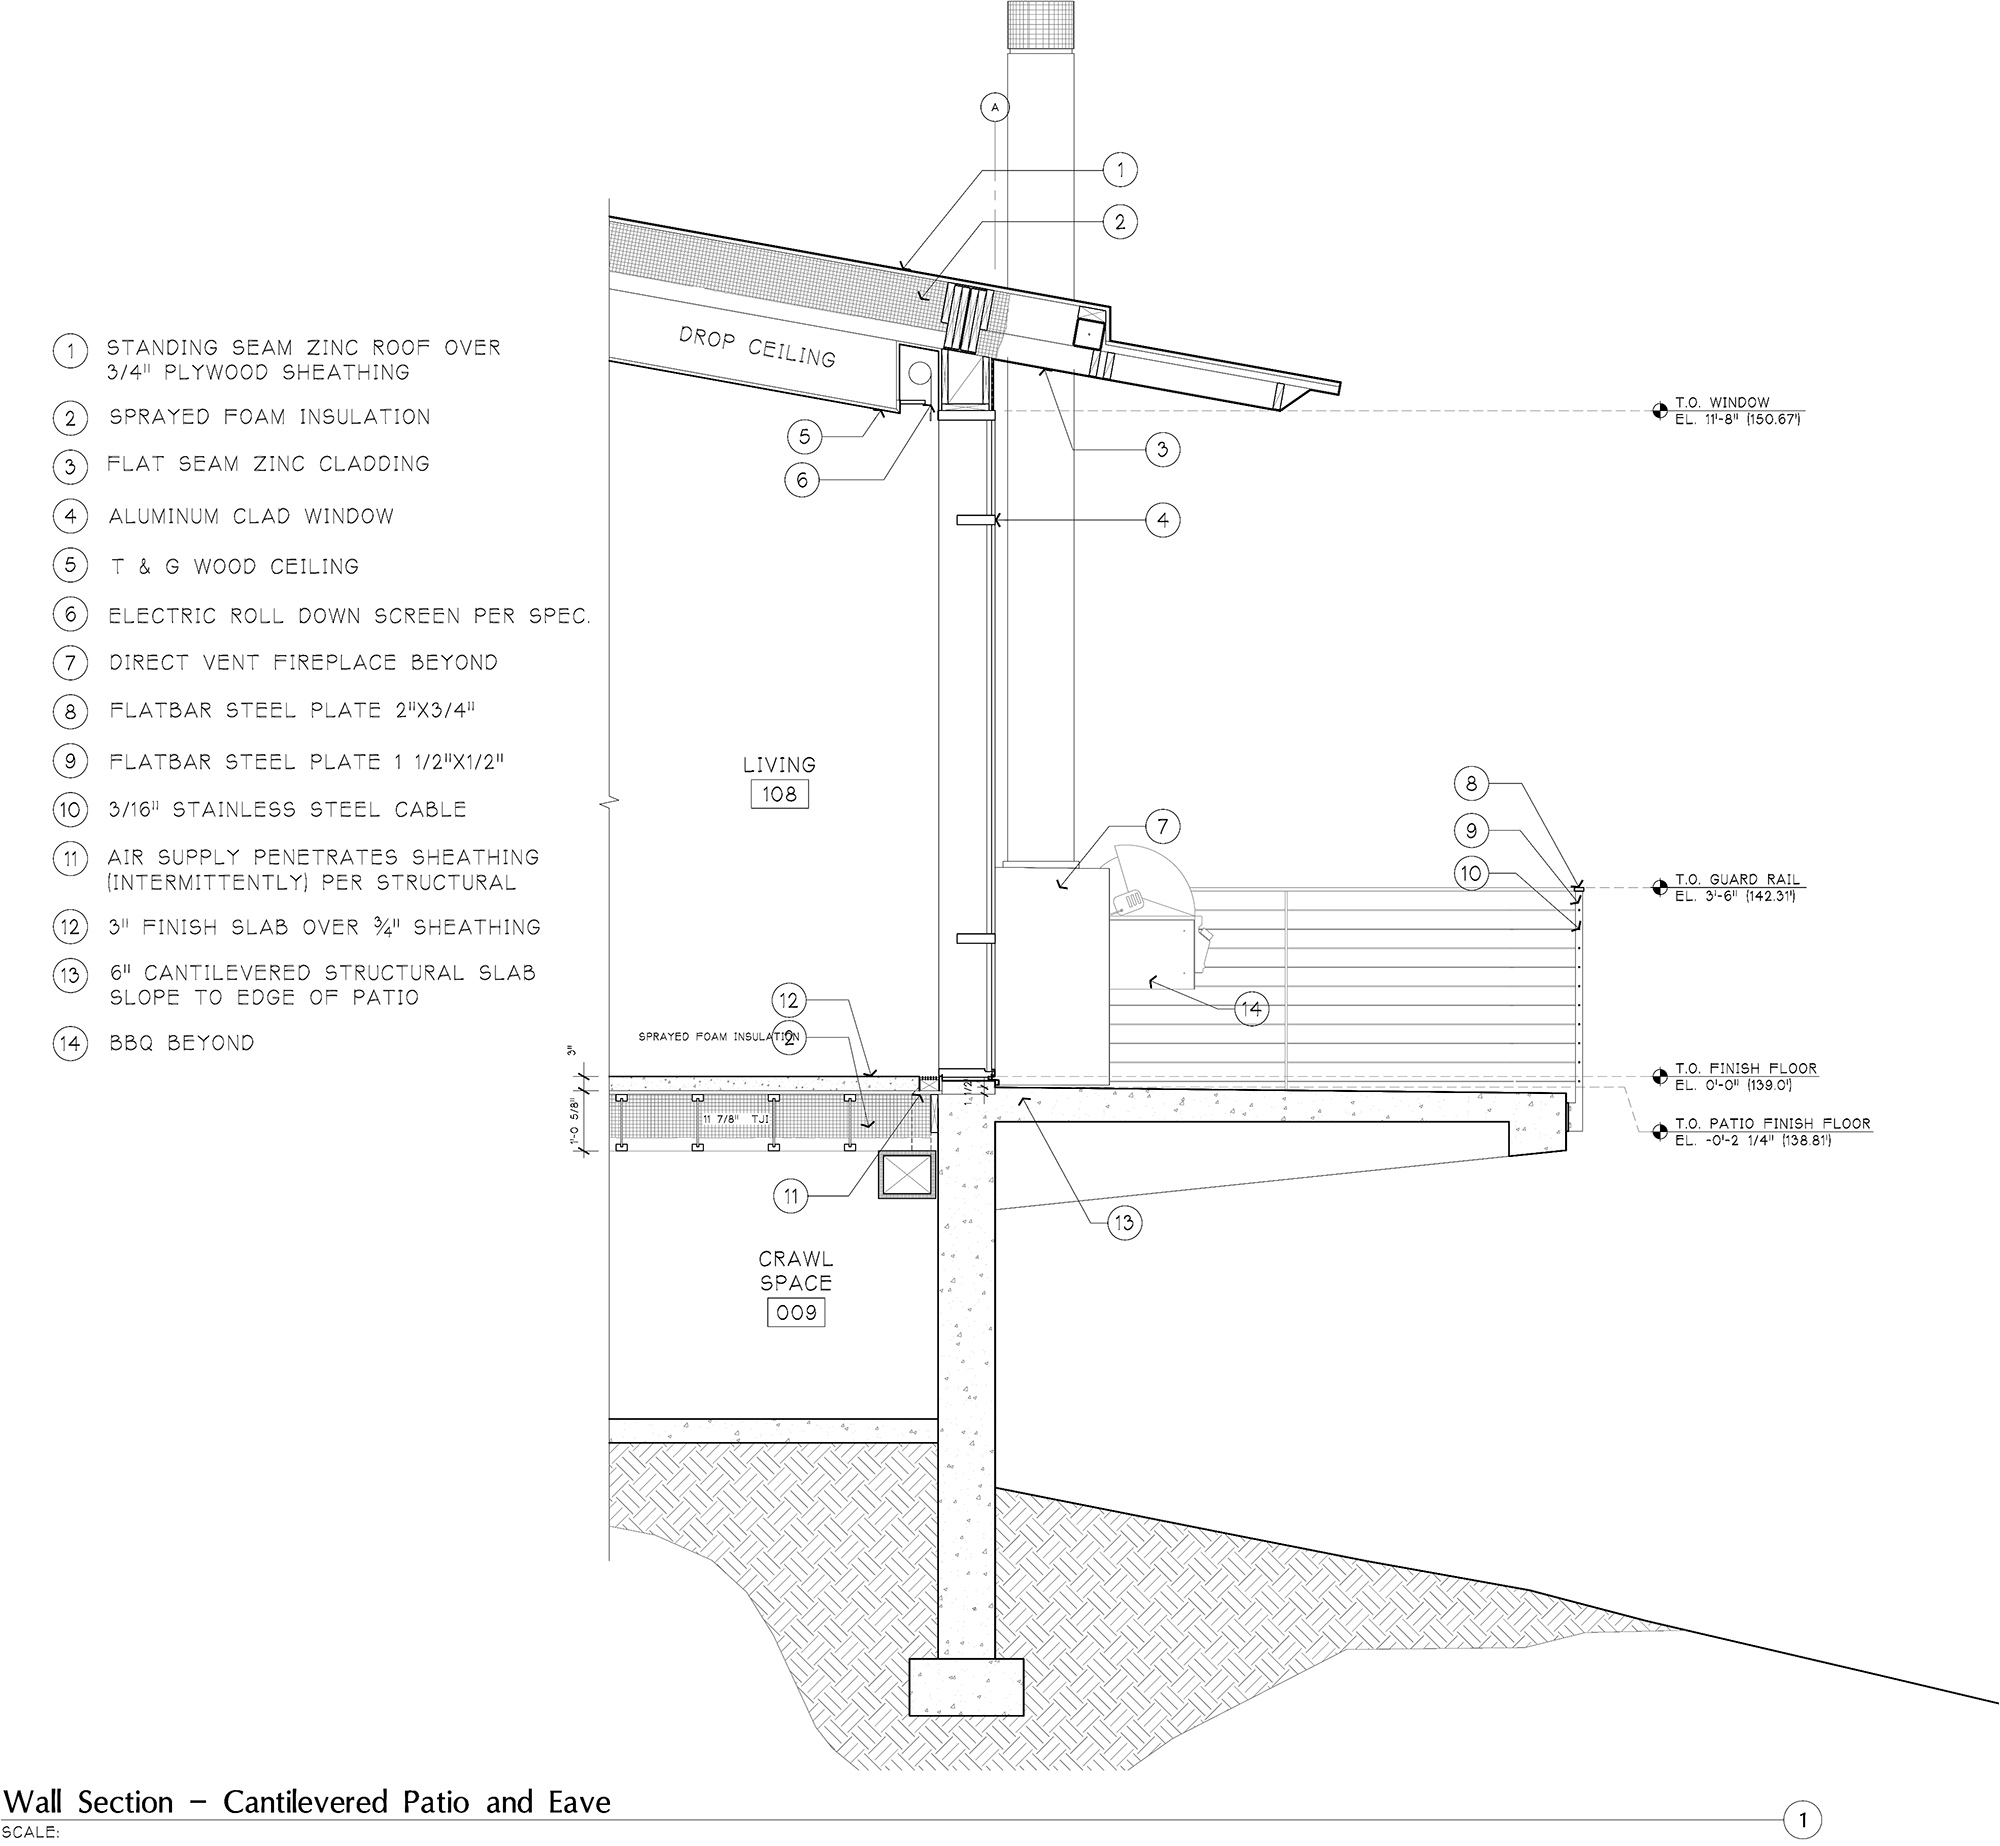 Wall Section - Cantilevered Patio }